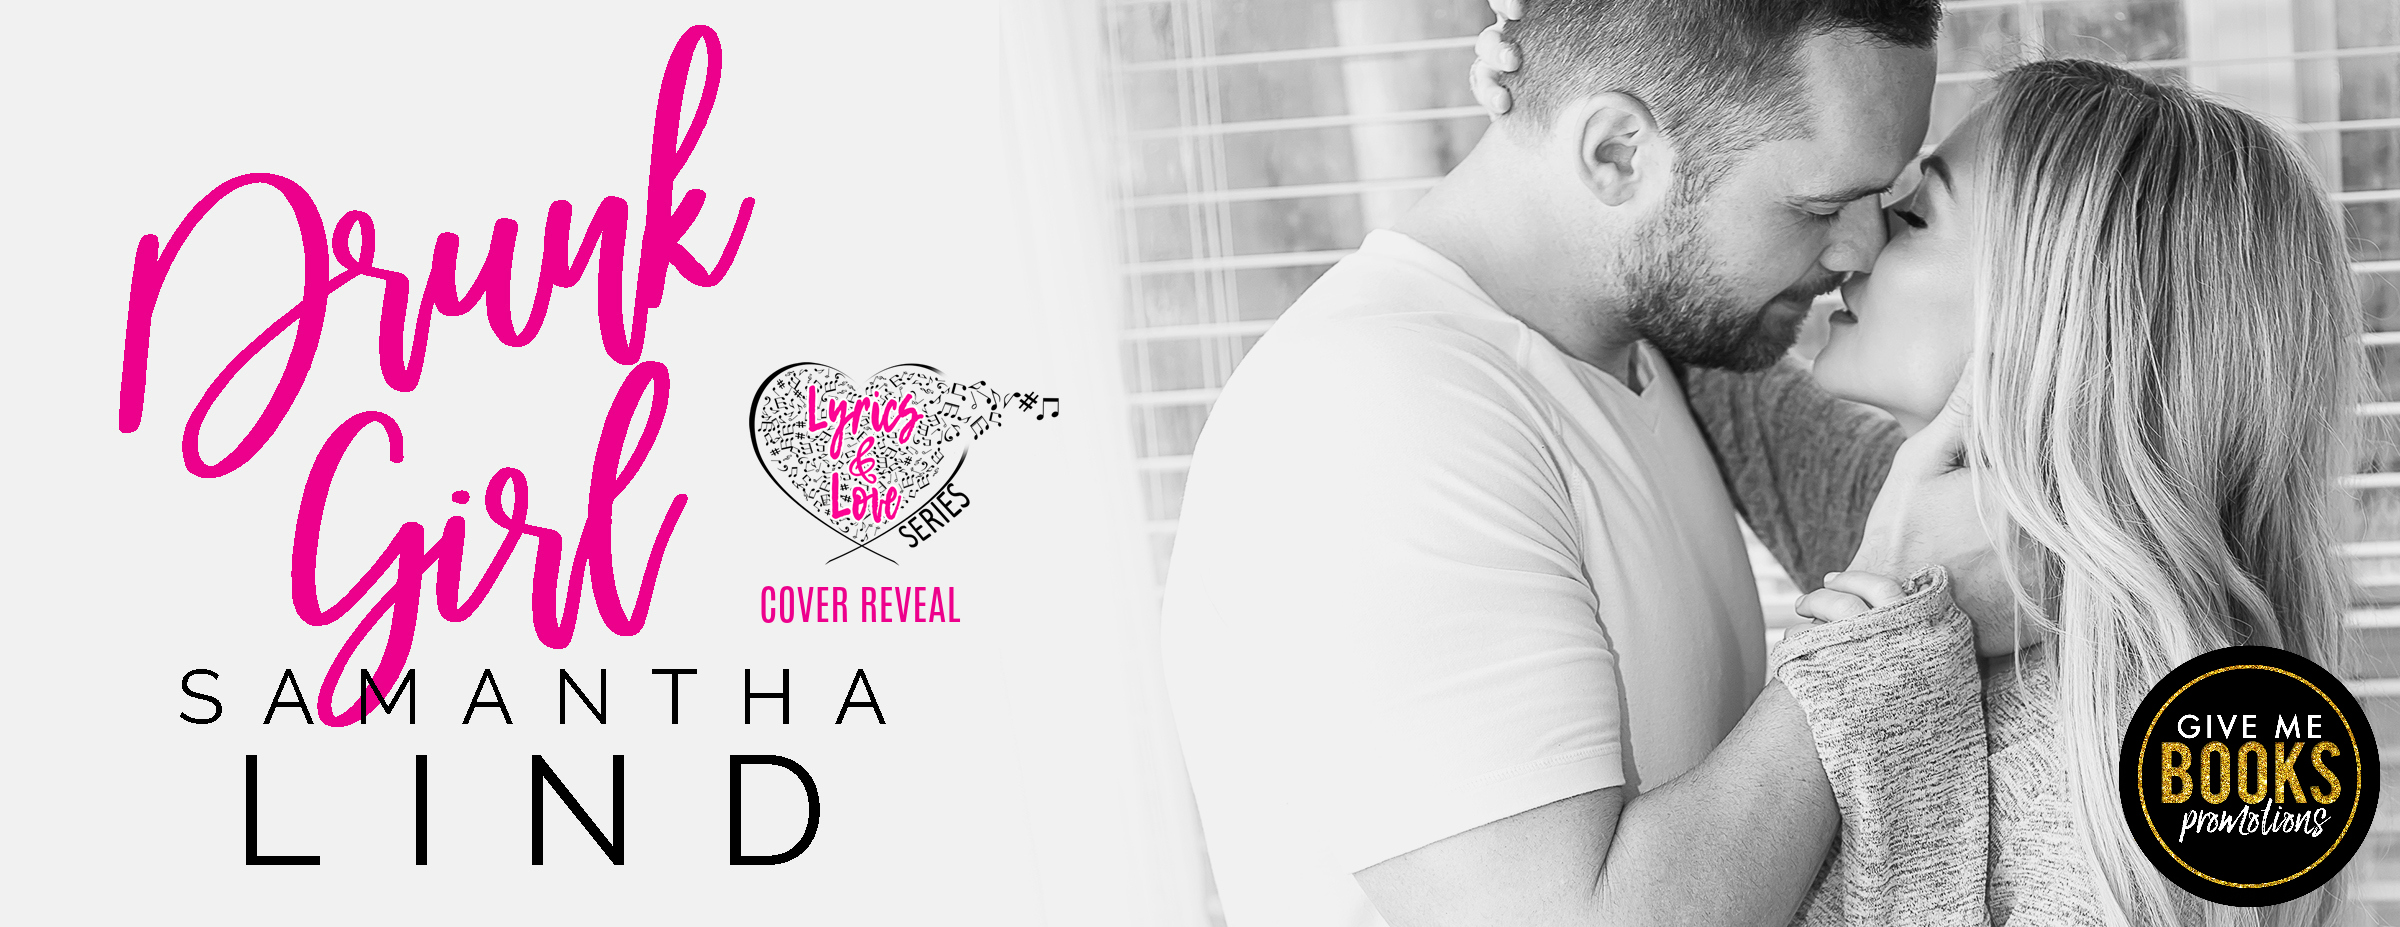 Cover Reveal: Drunk Girl by Samantha Lind